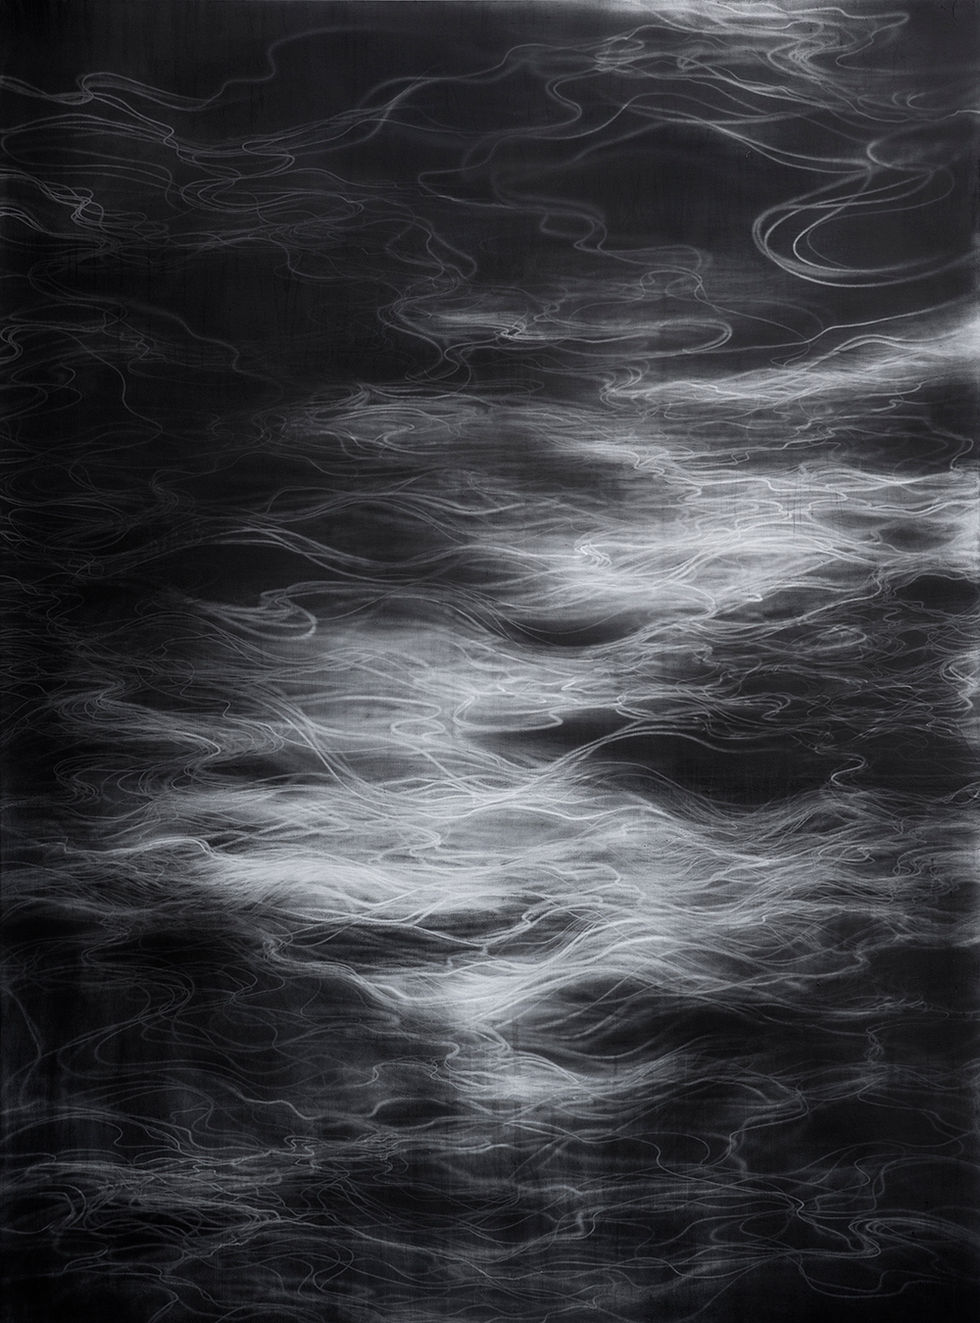 Waterscape 1301, 244x180cm, Graphite, water-drawing on Mulberry paper, 2013